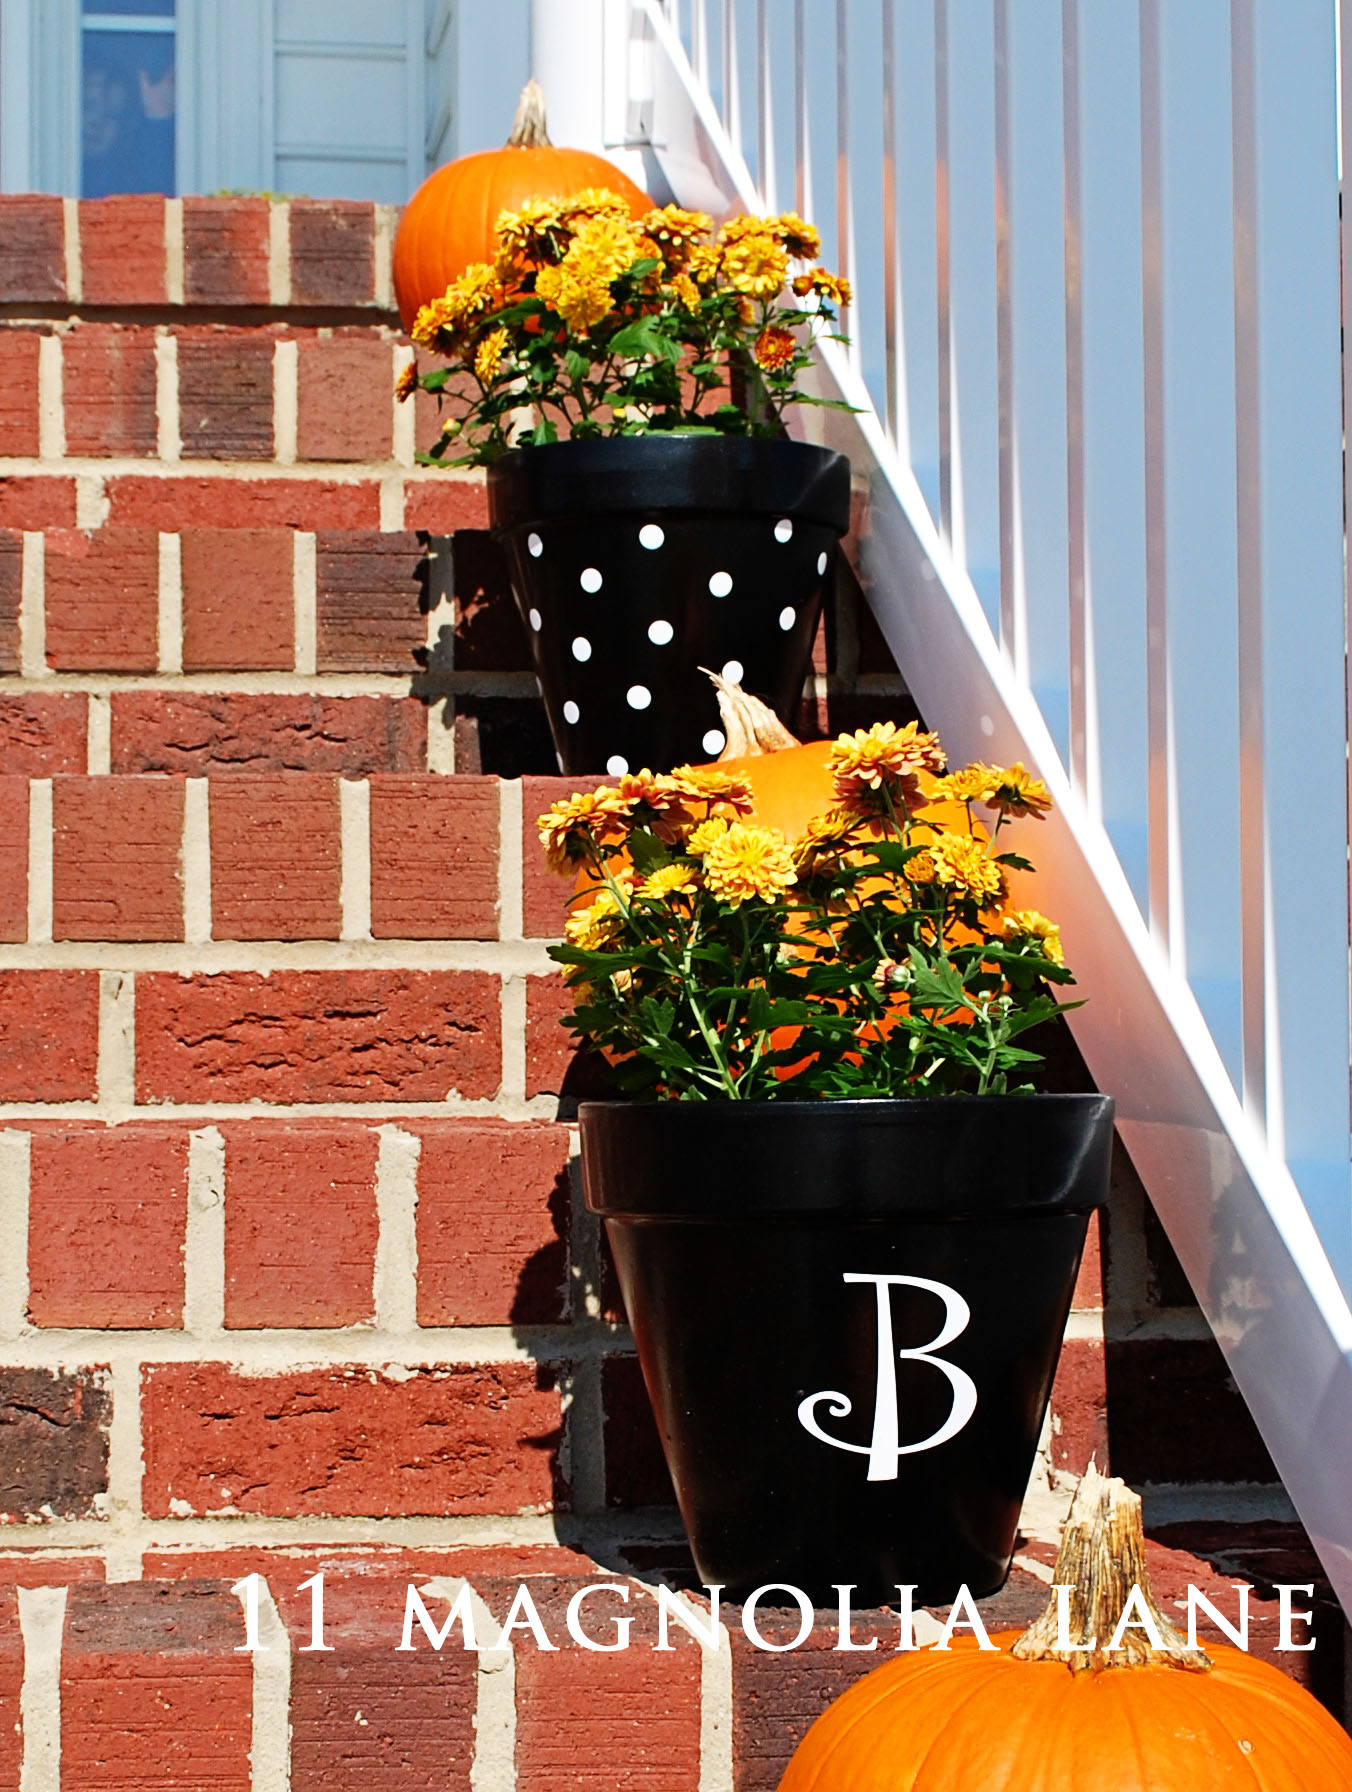 flower pots with decals {11 magnolia lane}